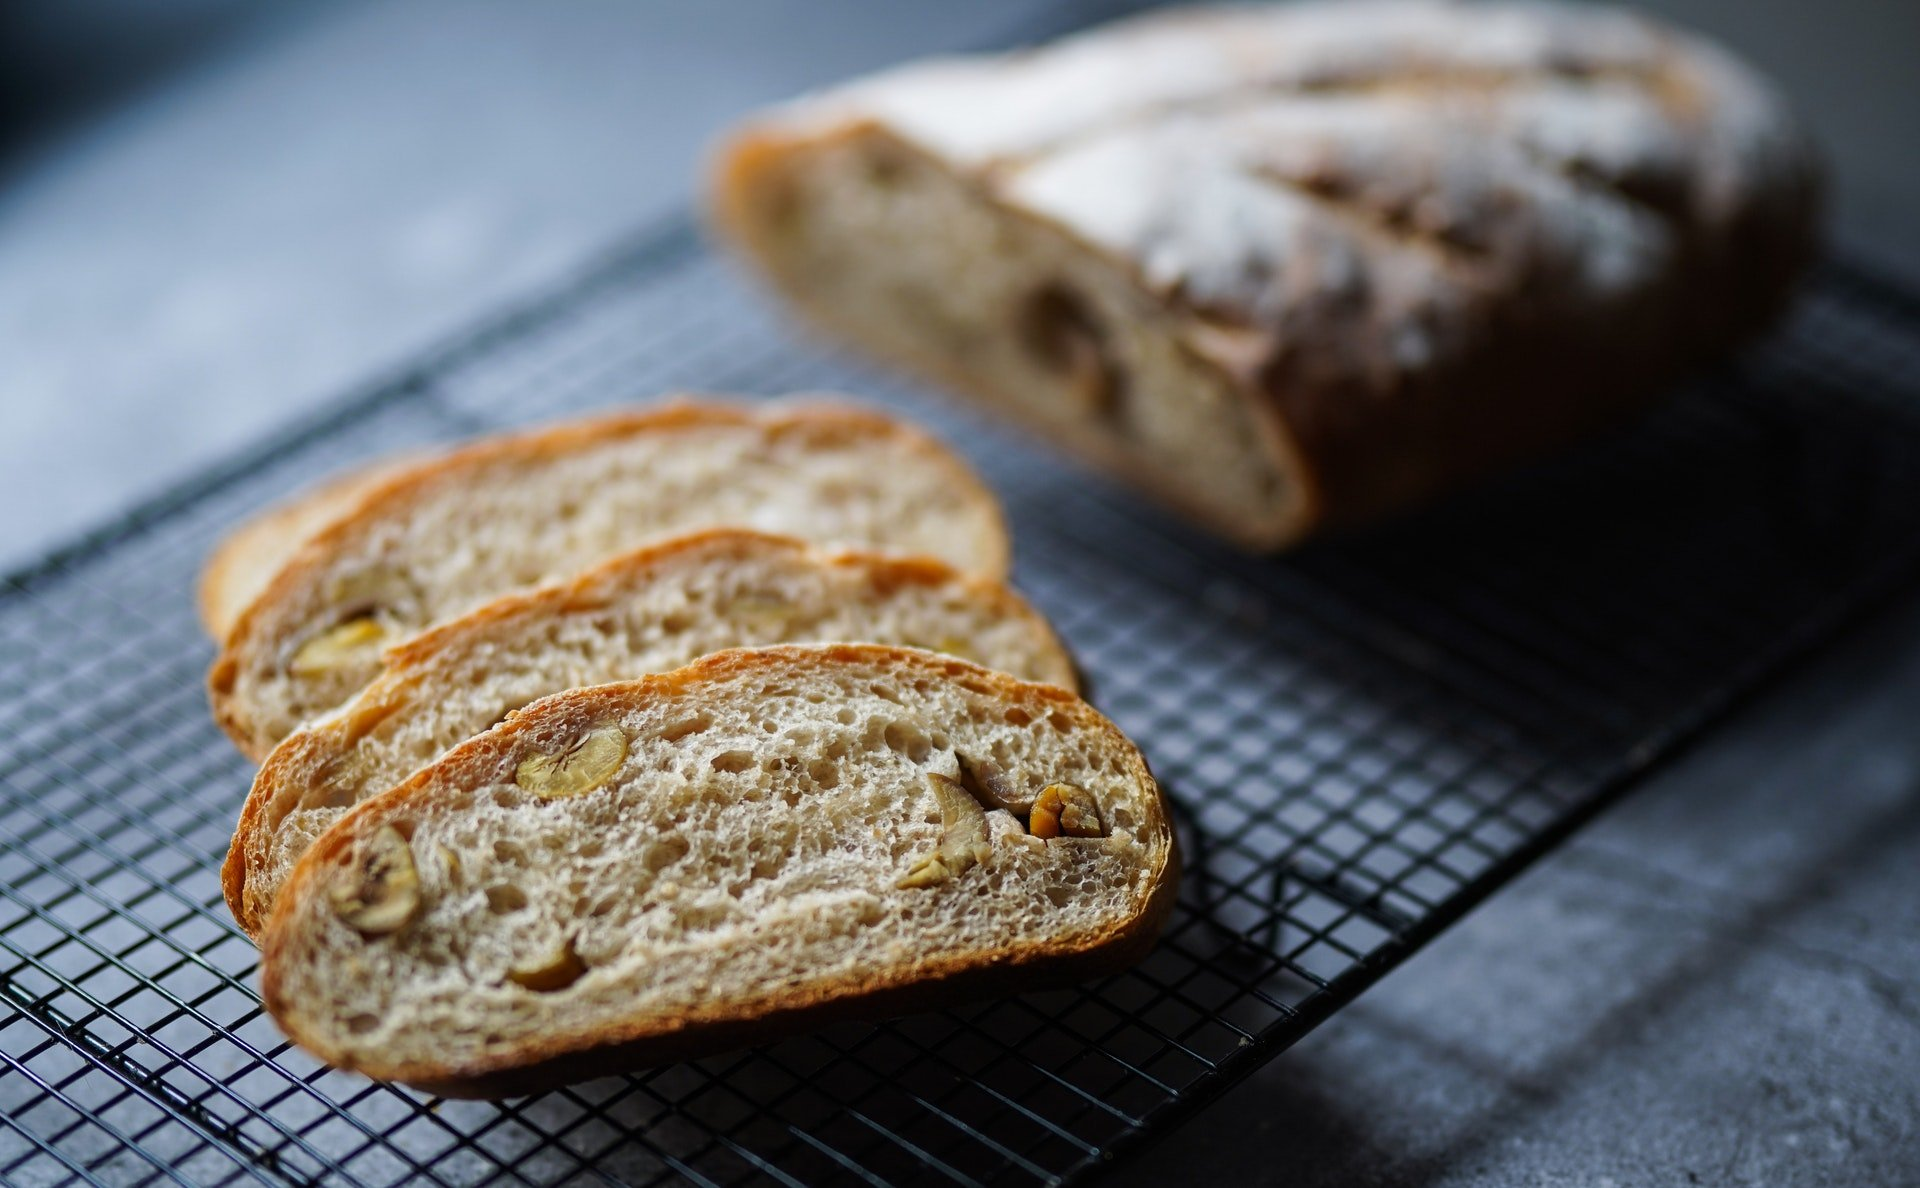 Forget Banana Bread, Here's Why You Should Bake Sourdough Bread